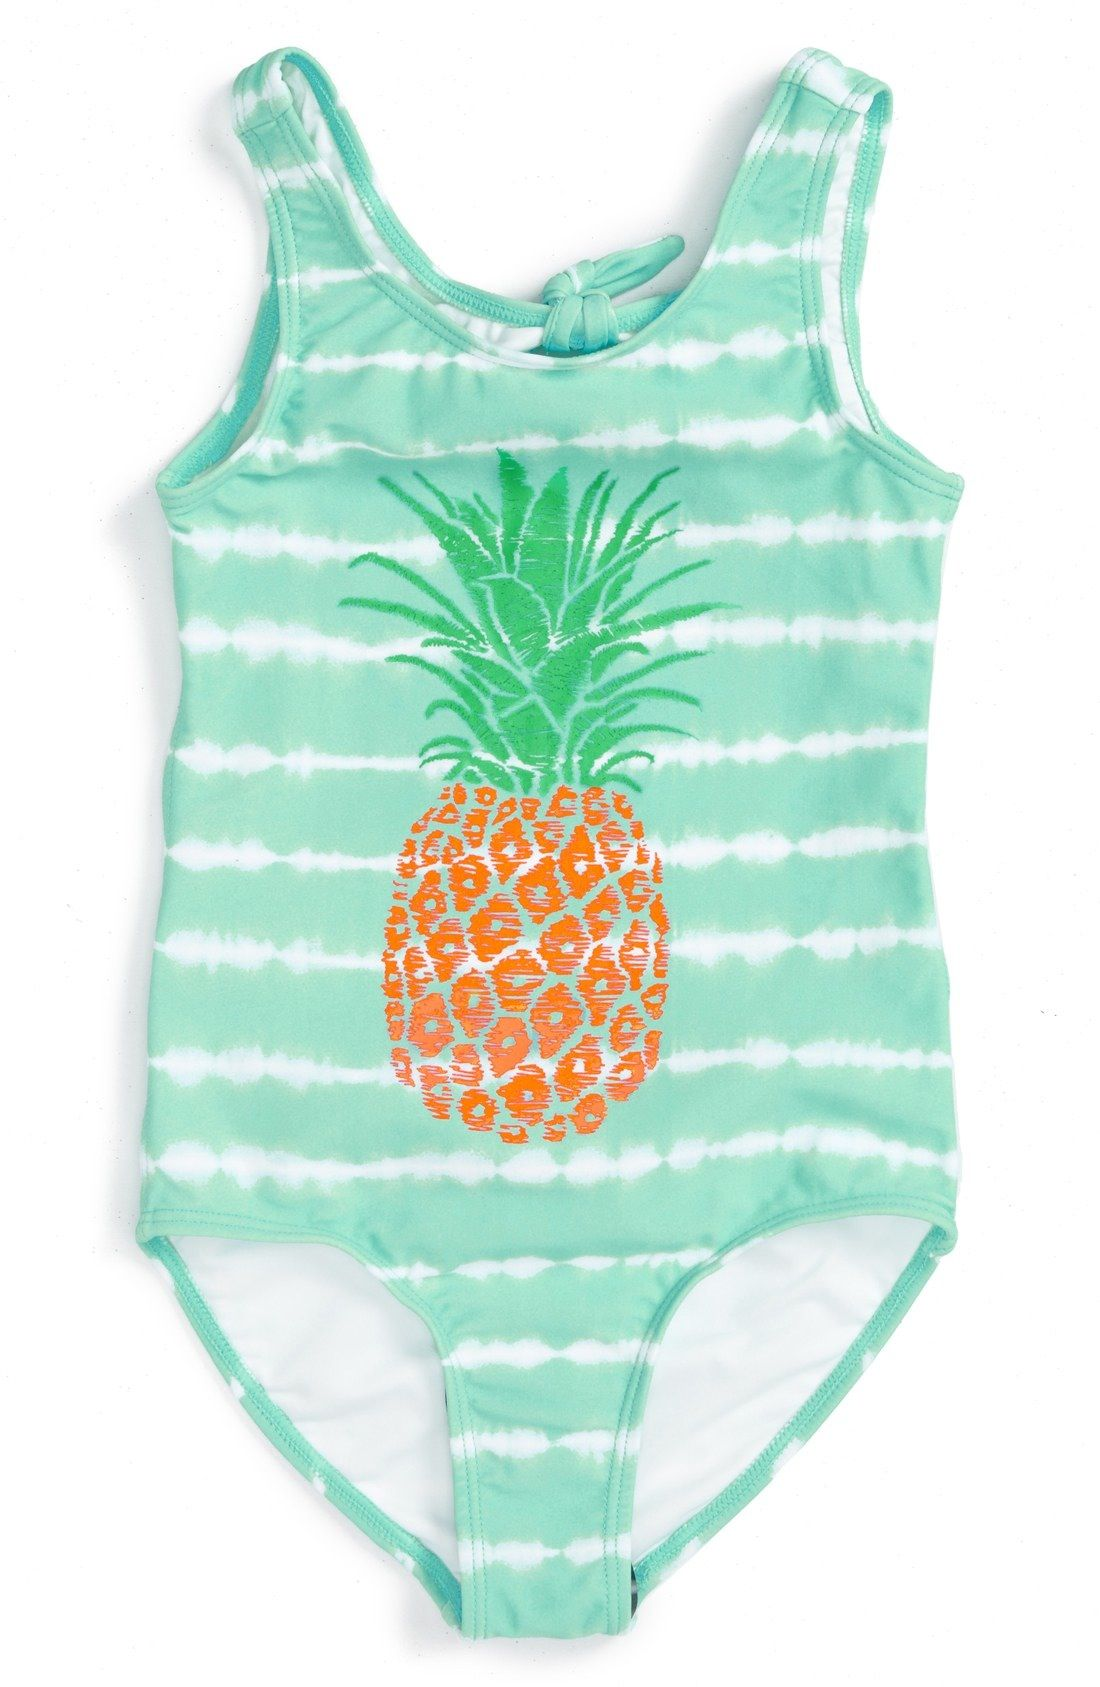 7db5e288dd0 The sweetest pineapple swimsuit!